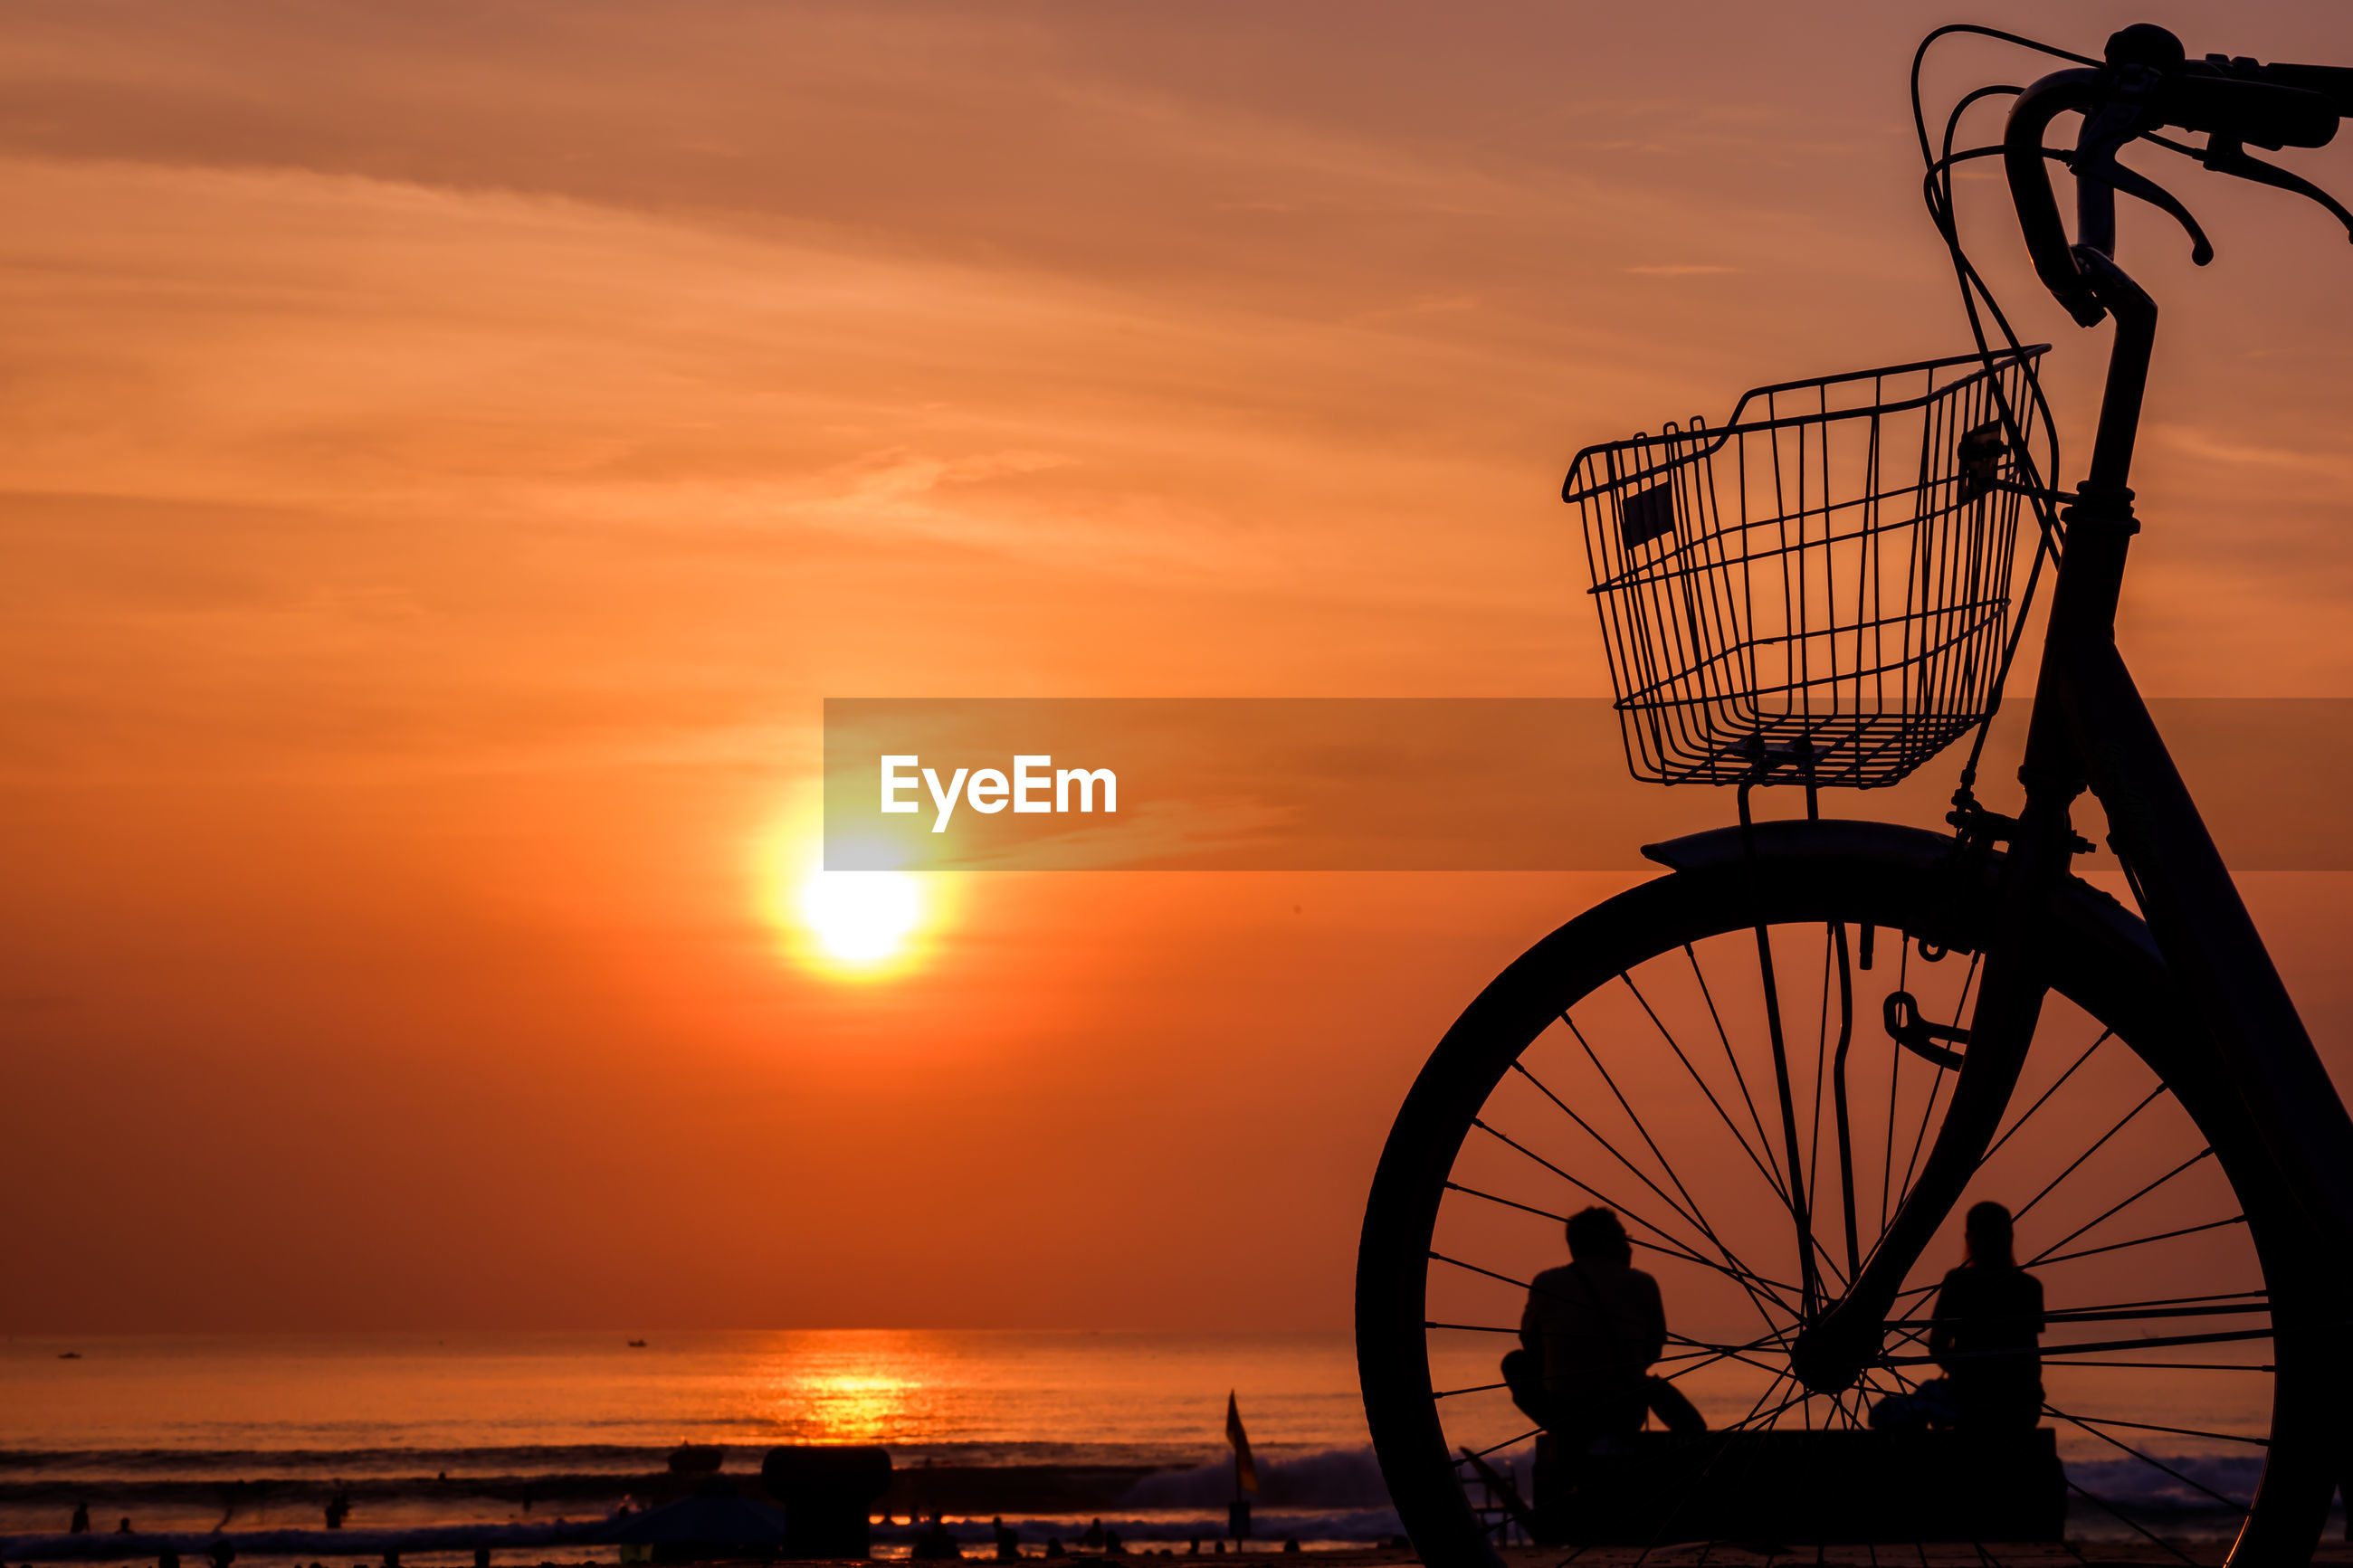 SILHOUETTE OF BICYCLE BY SEA AGAINST SKY DURING SUNSET